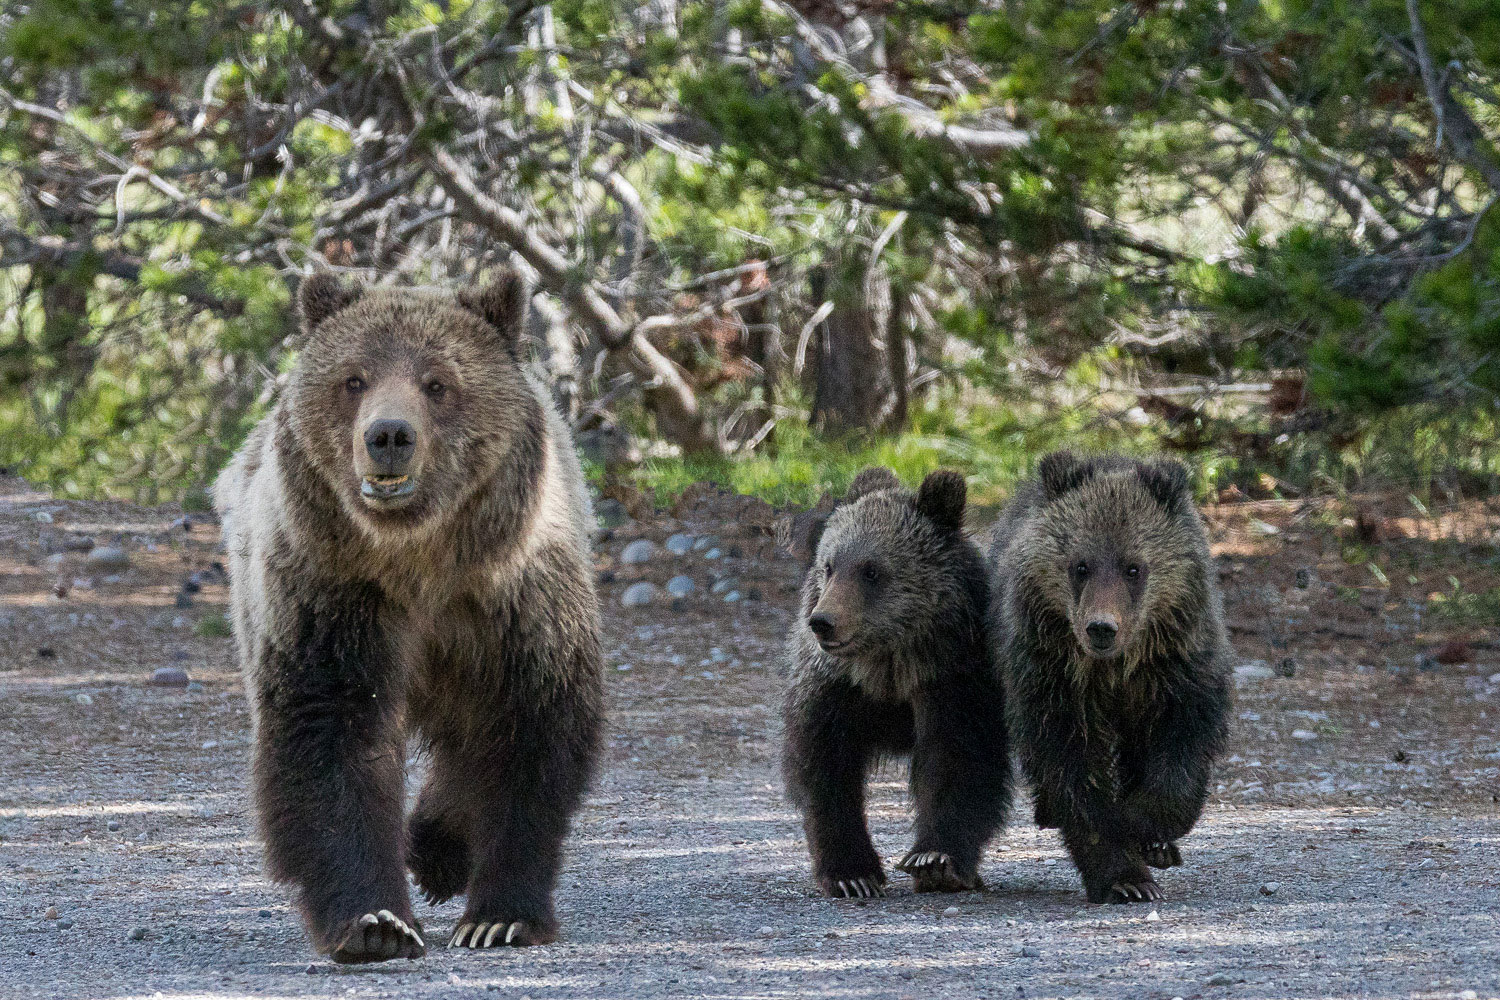 blondie, grizzly, bear, grand teton, photo, image, spring, cub, 2018, Tetons, photo